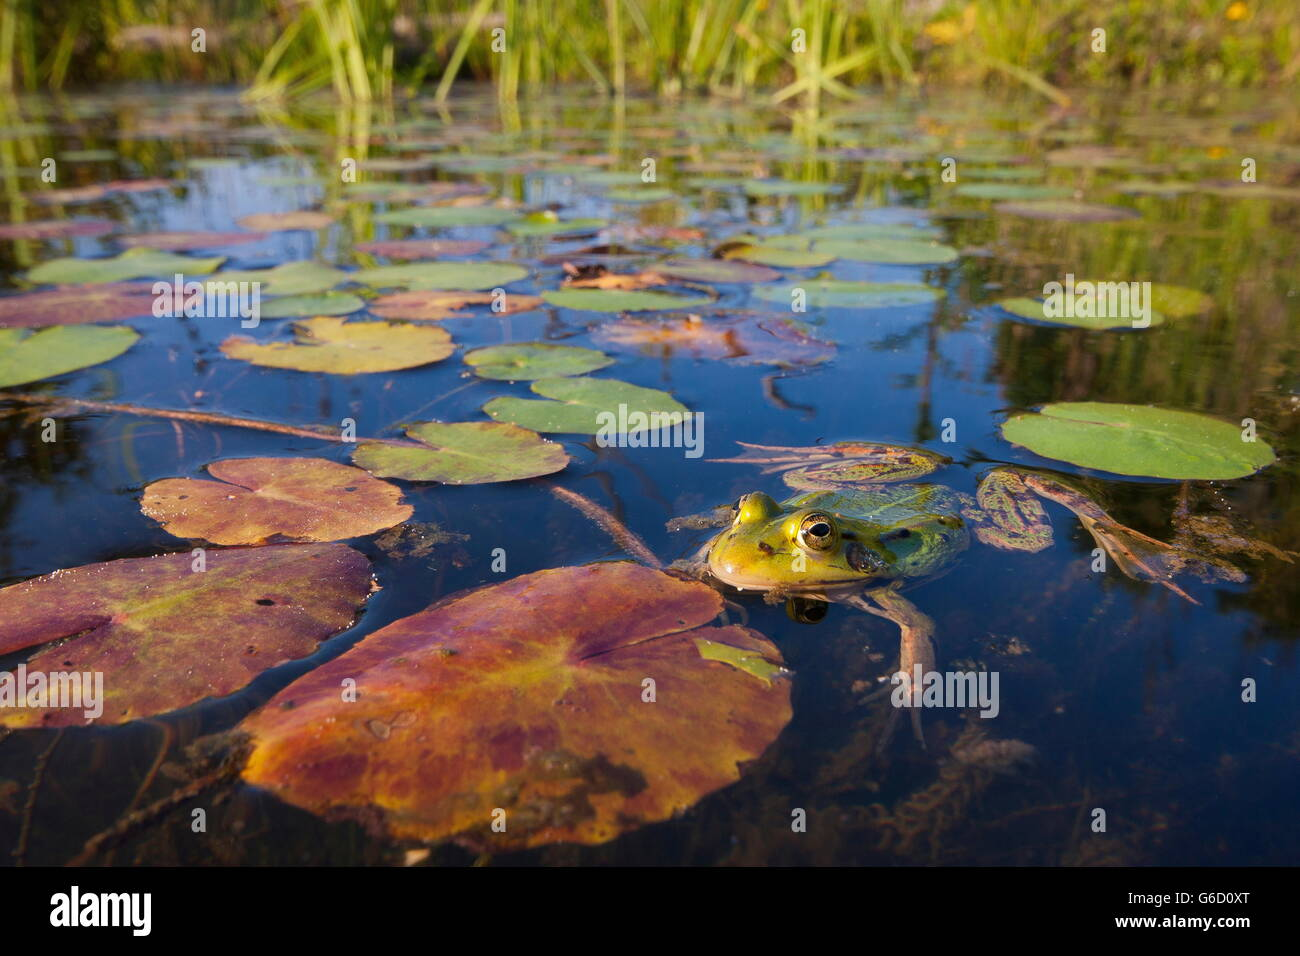 pool frog, Germany / (Pelophylax lessonae) - Stock Image